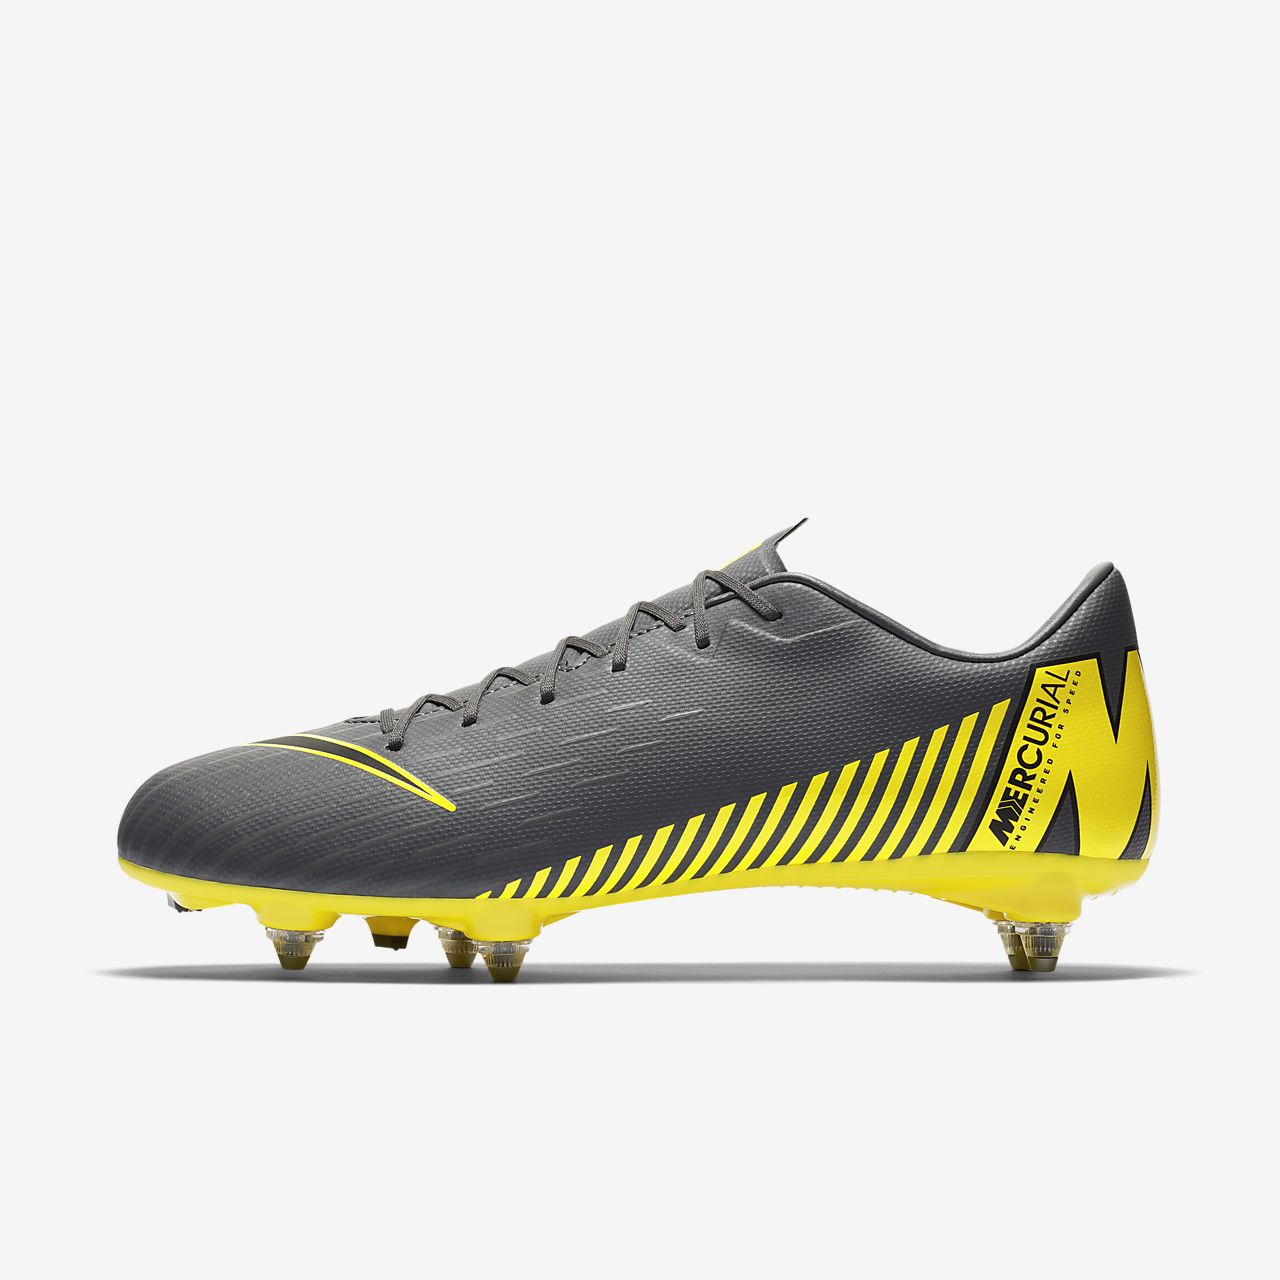 cheap for discount 1be40 06398 ... Chaussure de football à crampons pour terrain gras Nike Mercurial Vapor  XII Academy SG-PRO